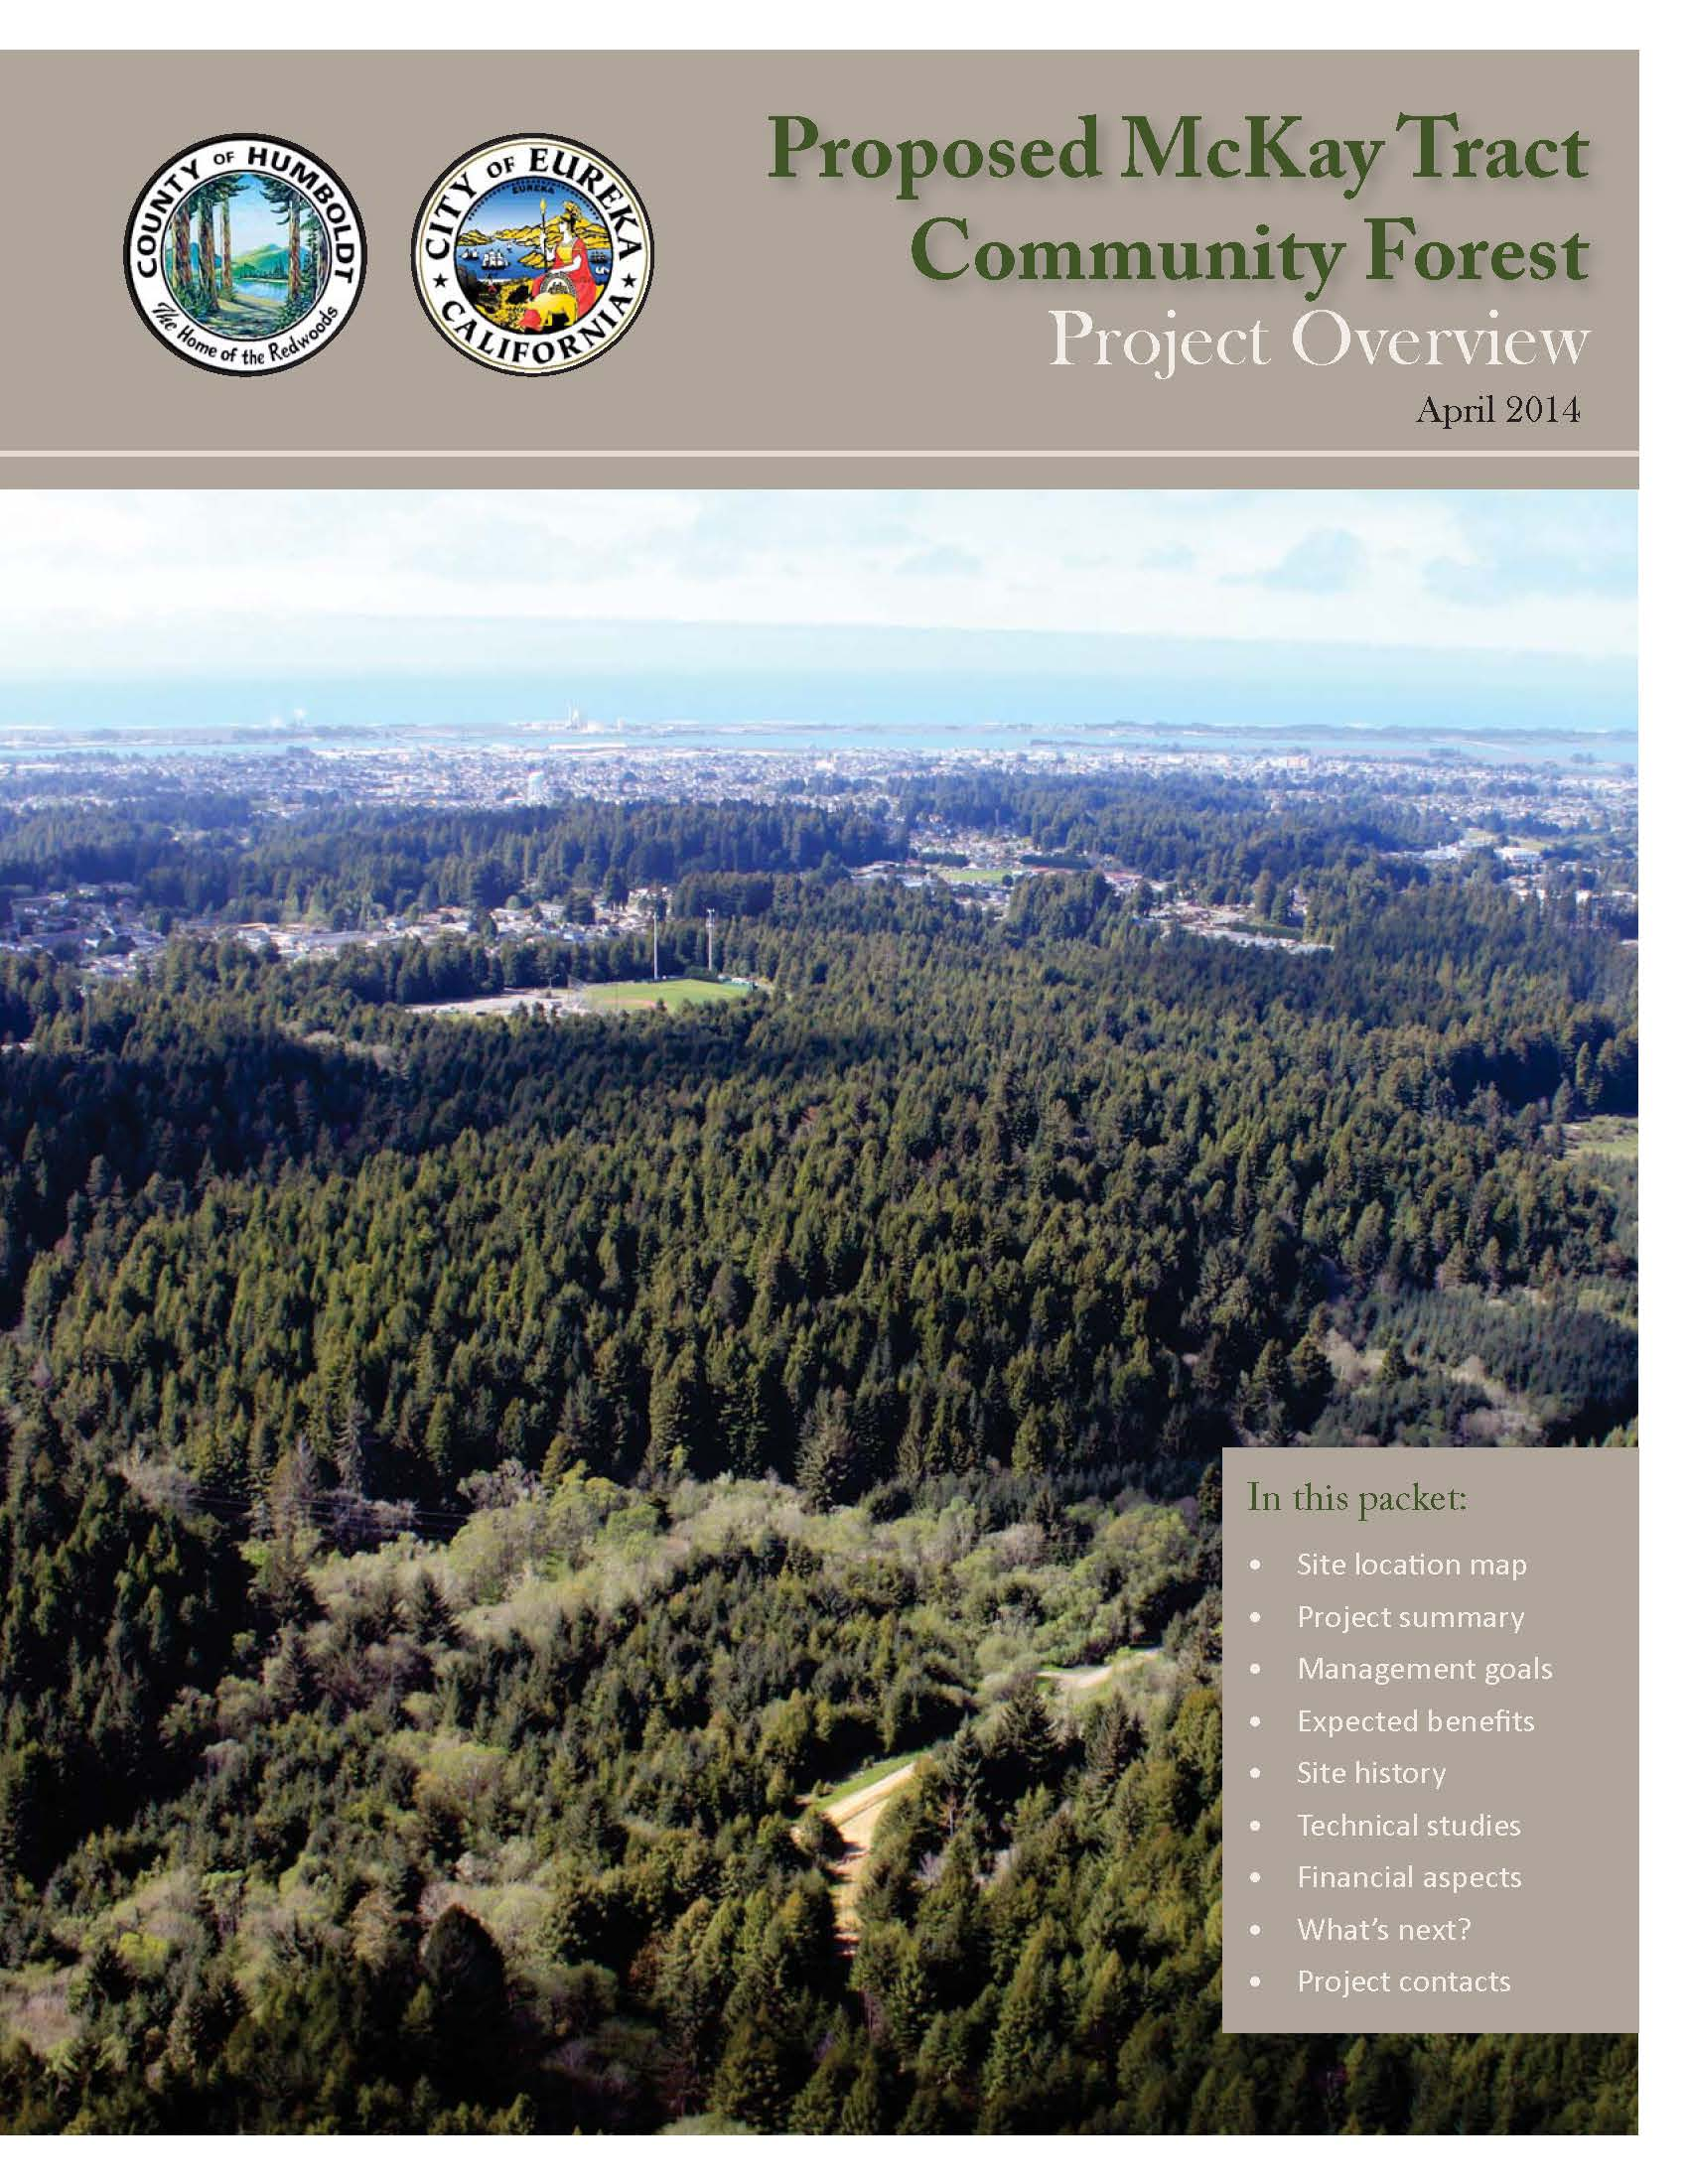 mckay forest pamphlet 4-7-2014_CoverImage